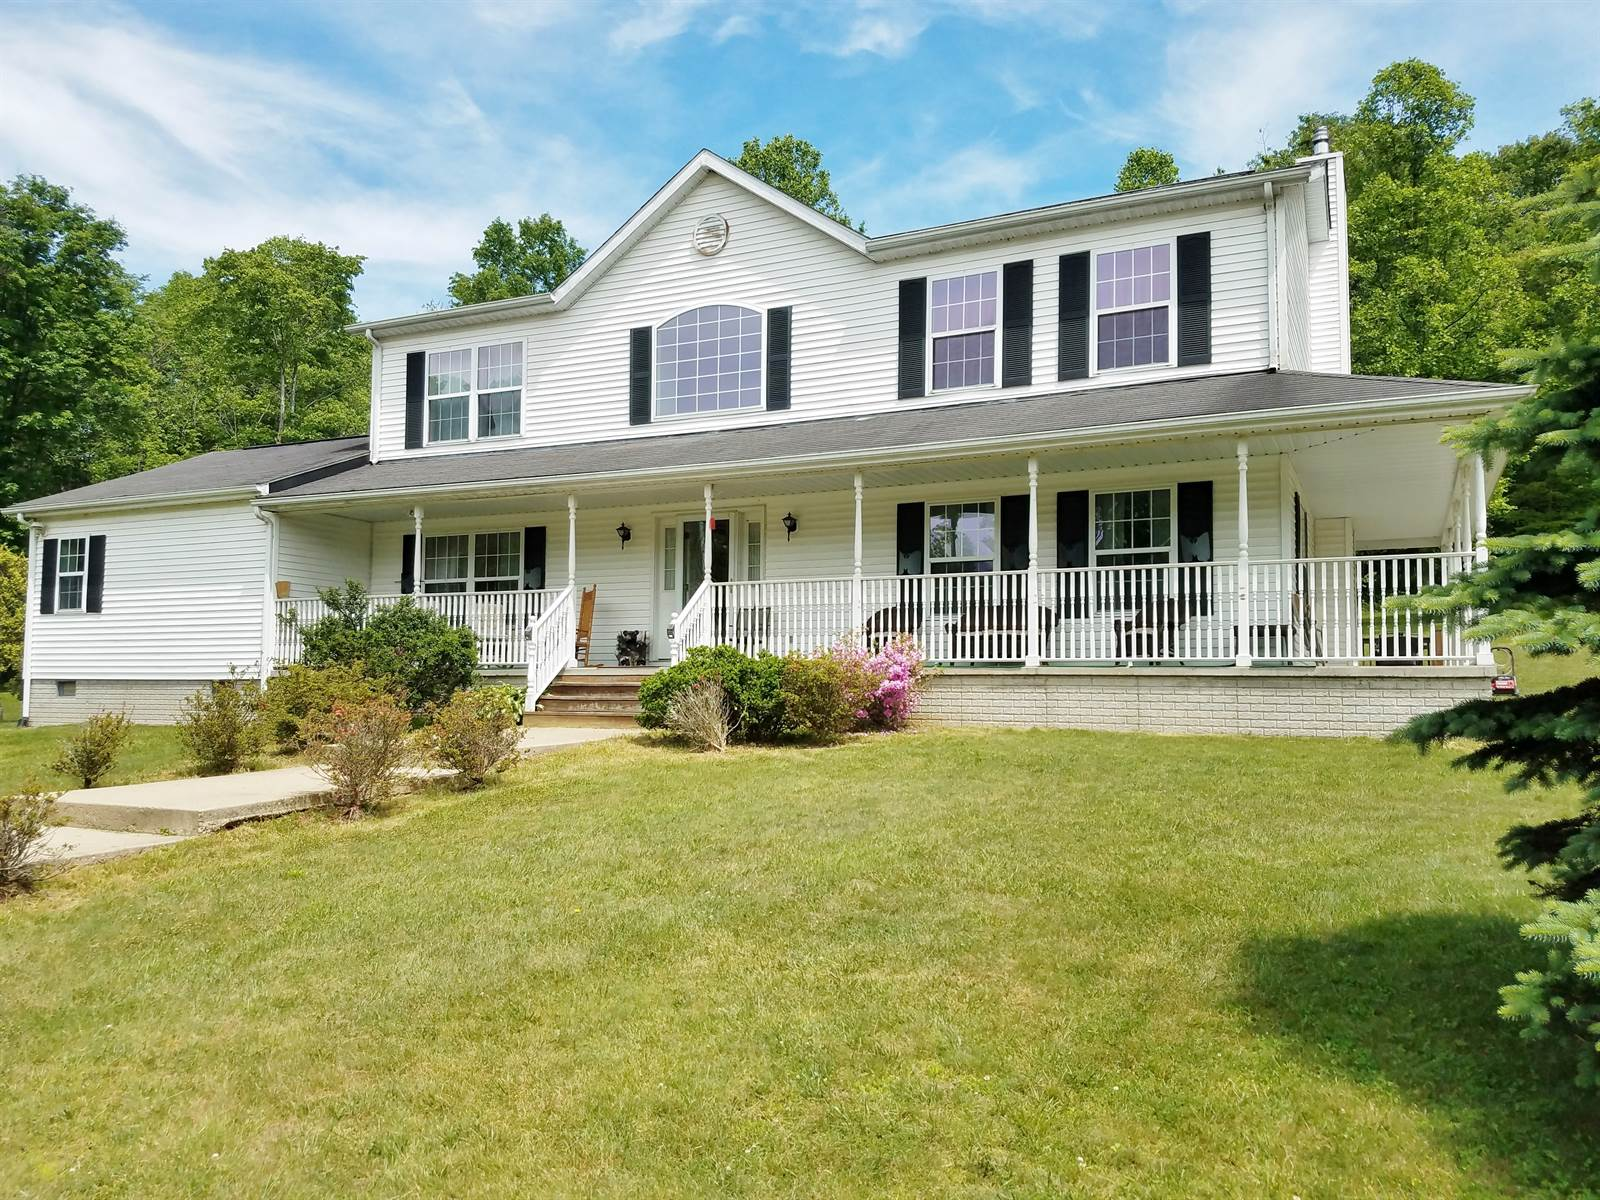 211, #Fox Hollow Road, Dayton, PA 16222